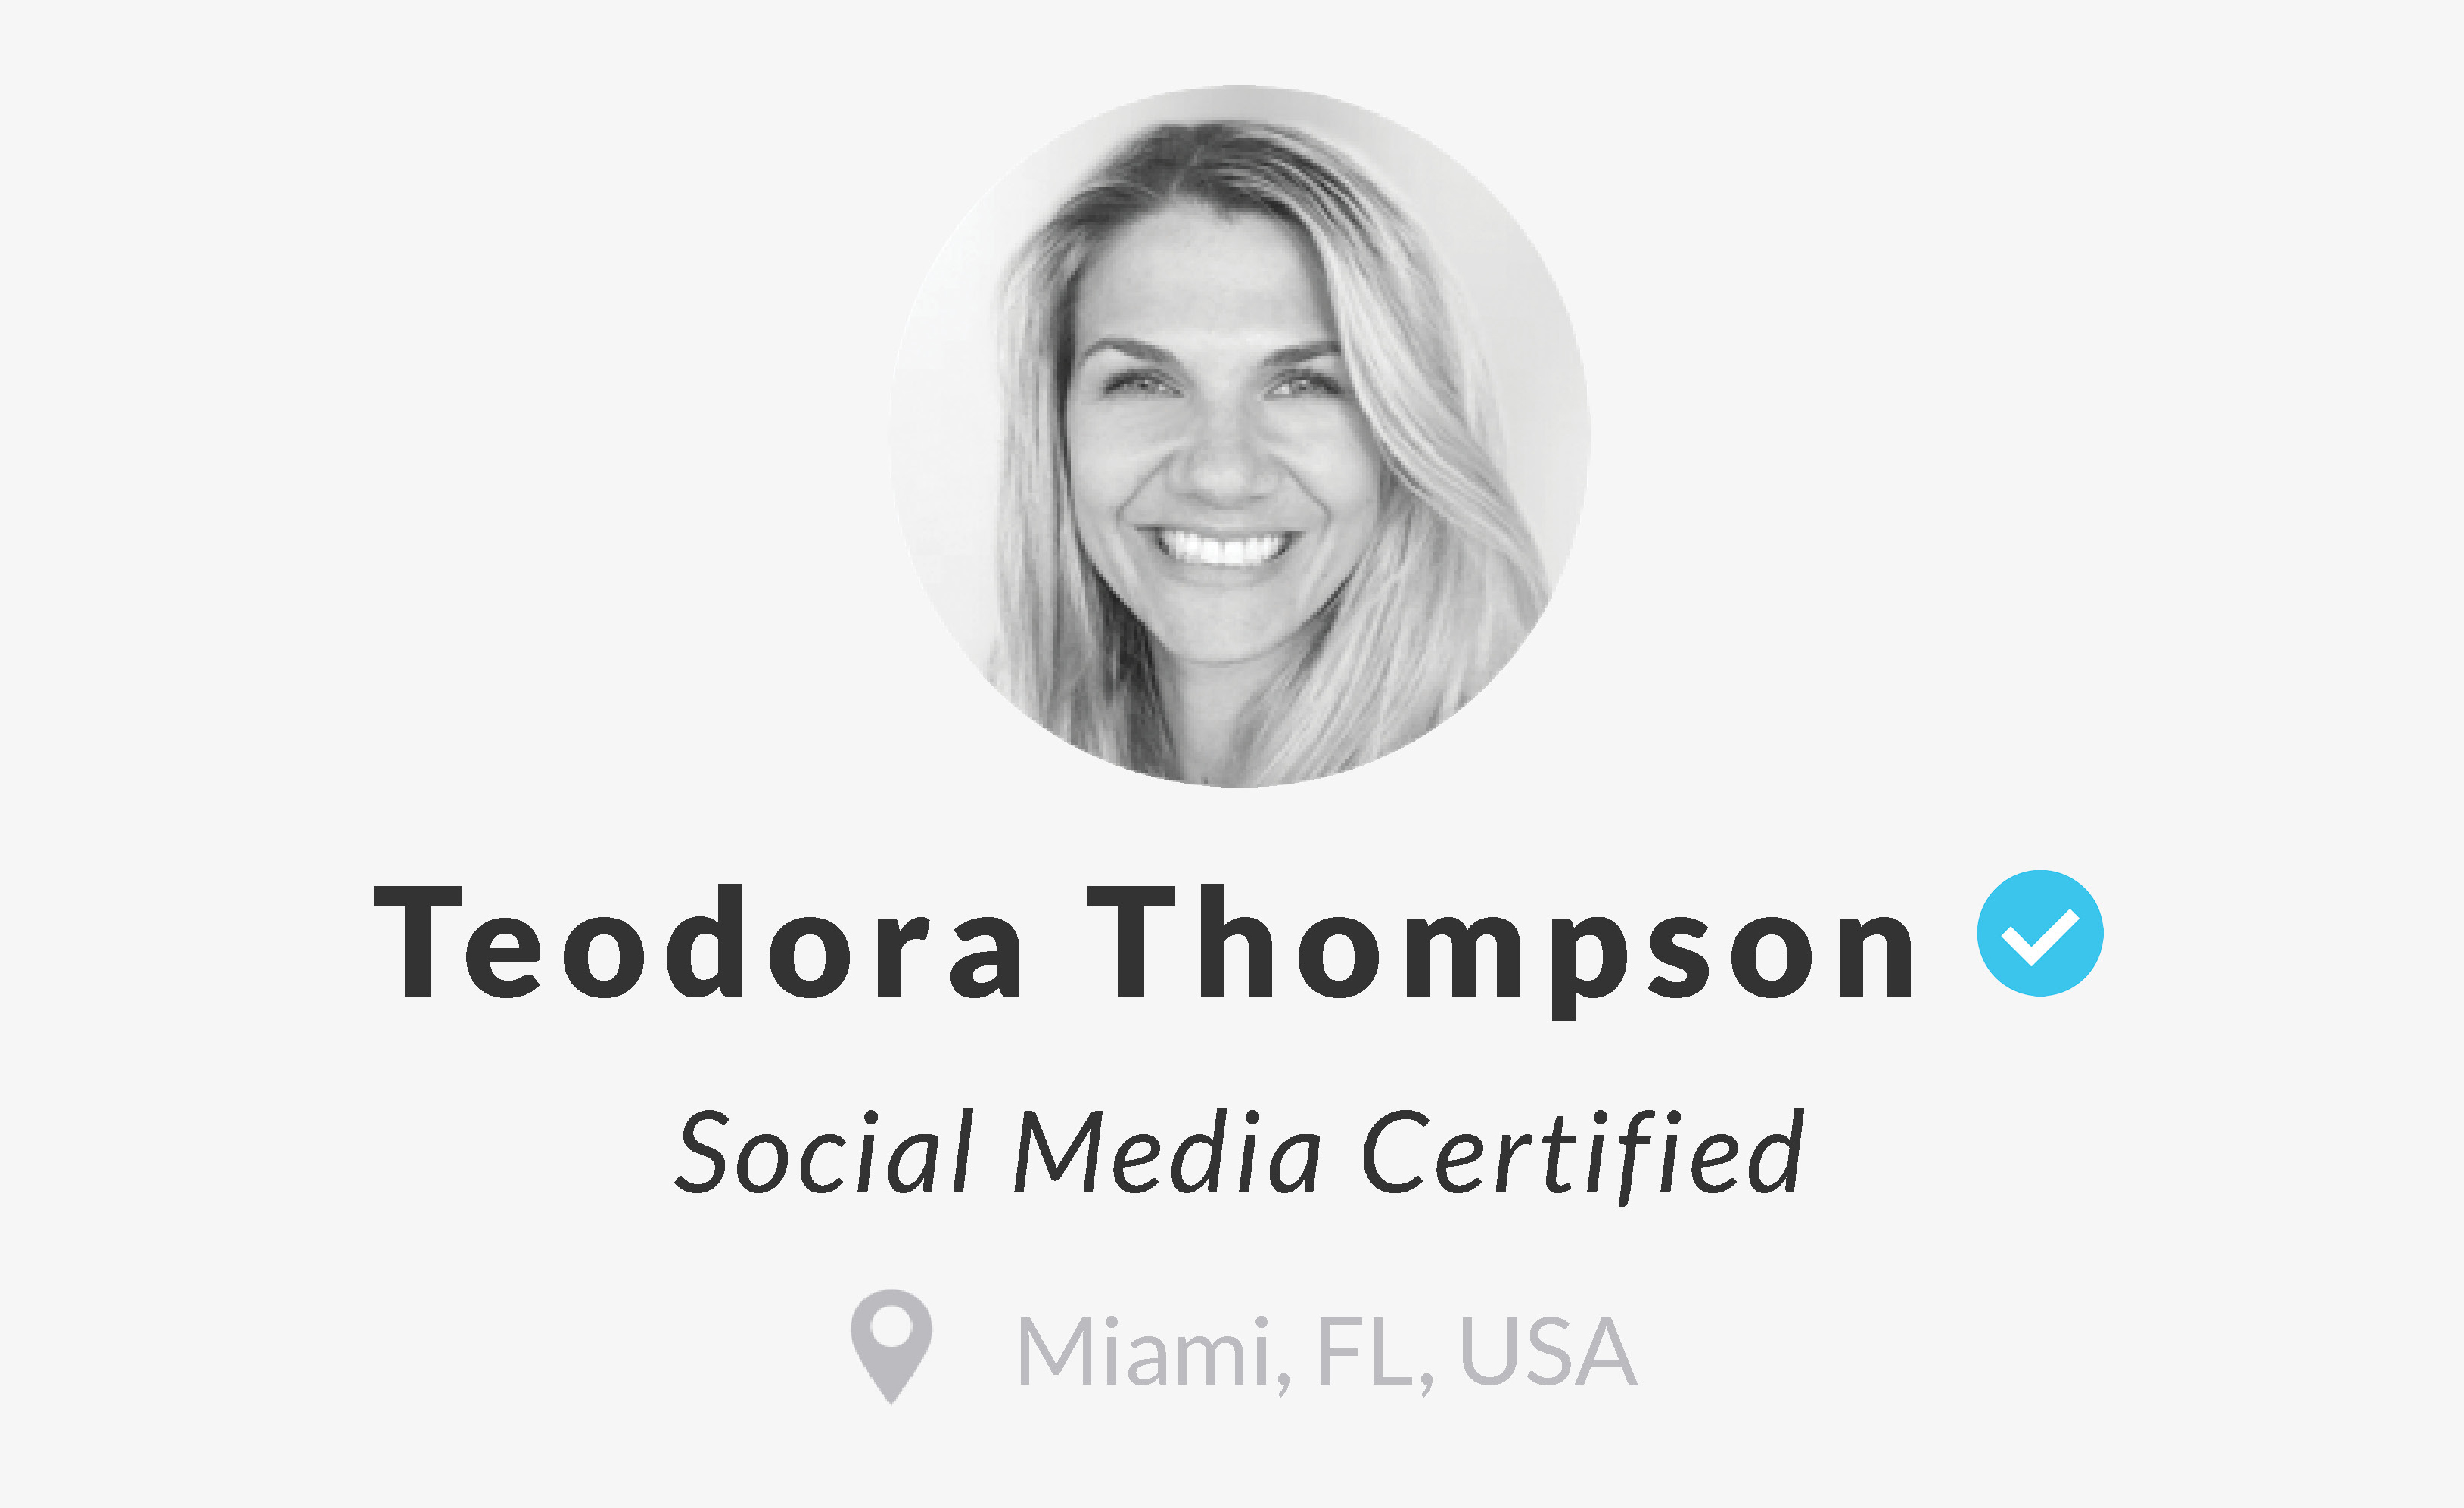 Social Media Certified Teodora Thompson Miami Marketing Co